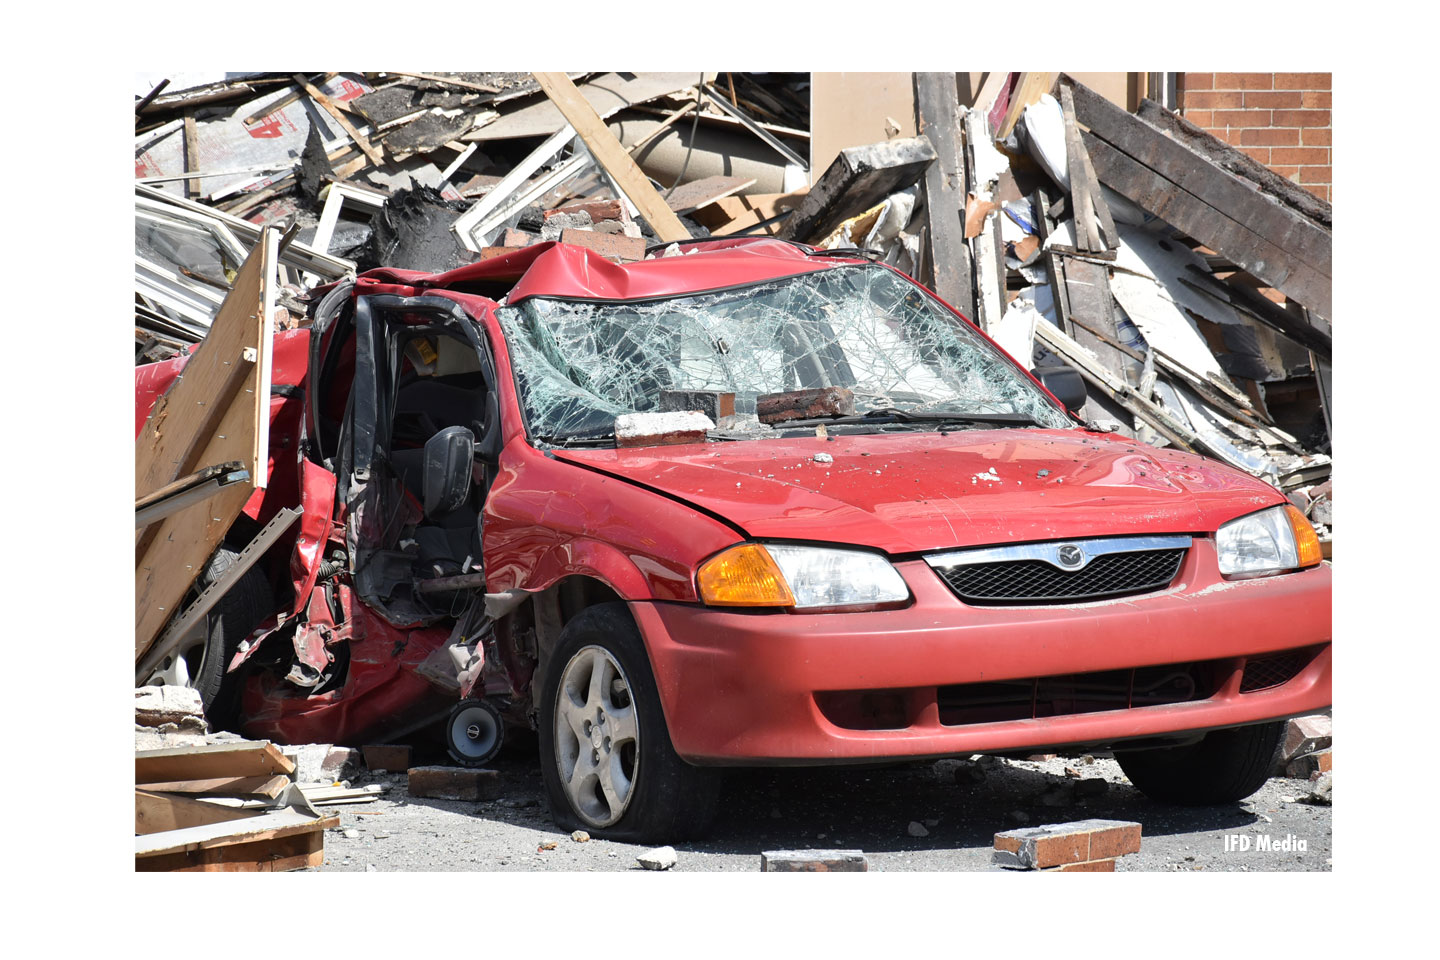 A vehicle in the debris.